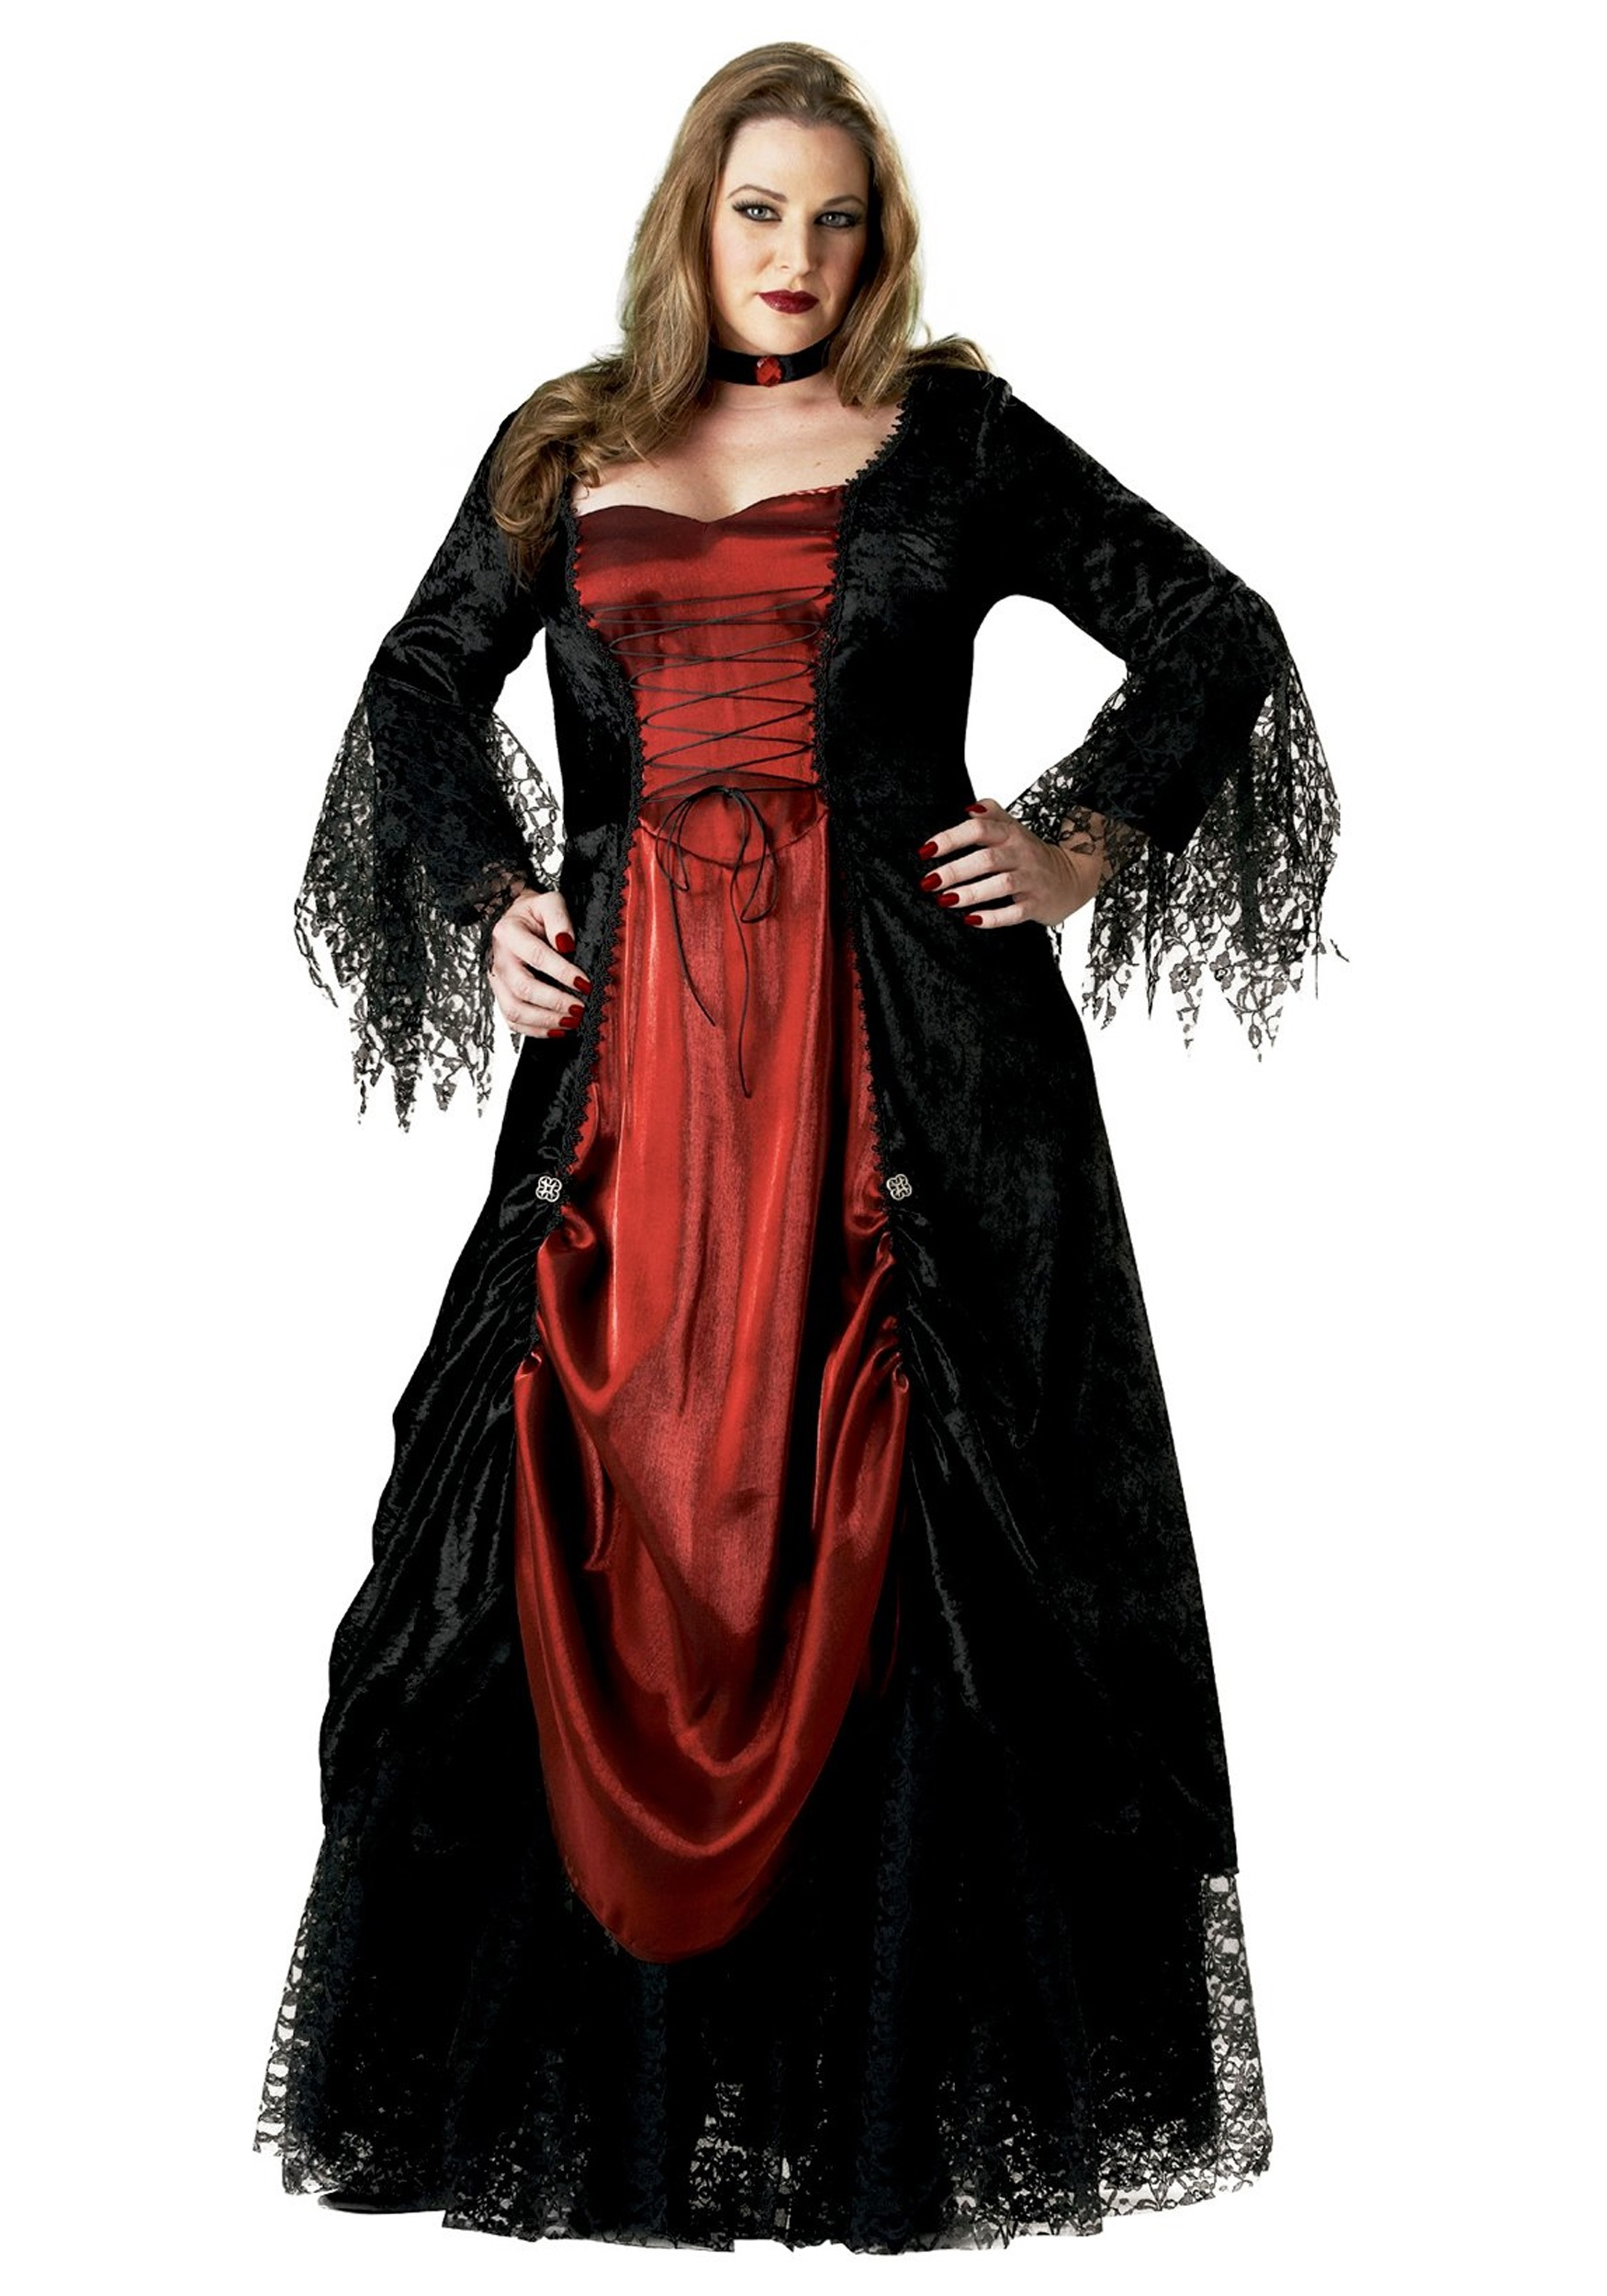 valentine one plus size halloween costumes. Black Bedroom Furniture Sets. Home Design Ideas